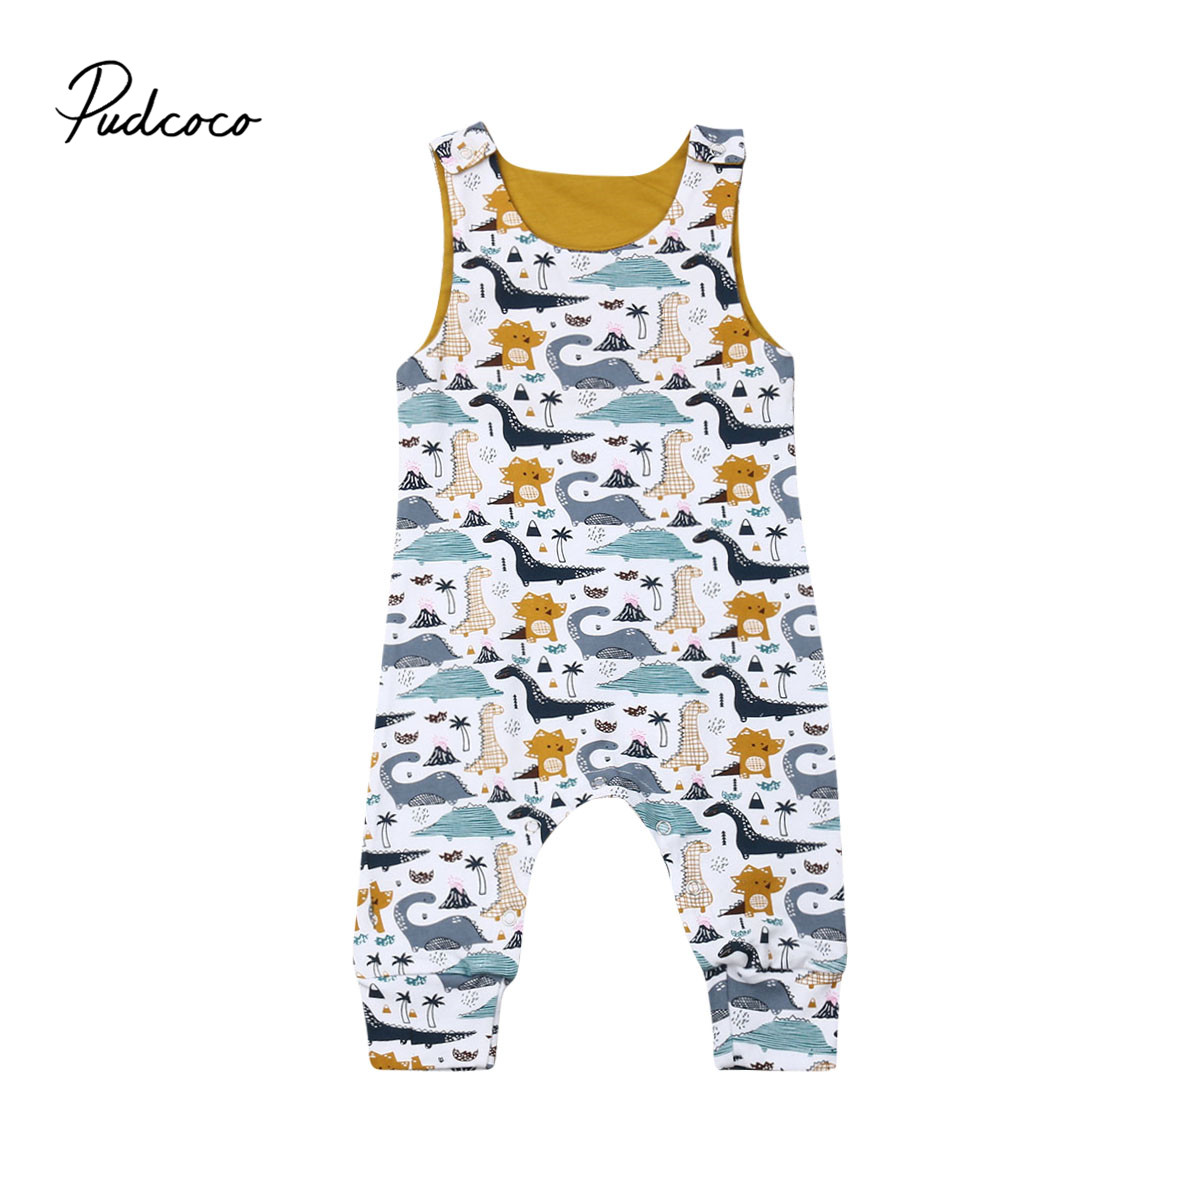 Pudcoco Baby Girl Rompers Autumn Winter Newborn Baby Clothes Toddler Sleeveless Dinosaur Romper Jumpsuit One-Piece